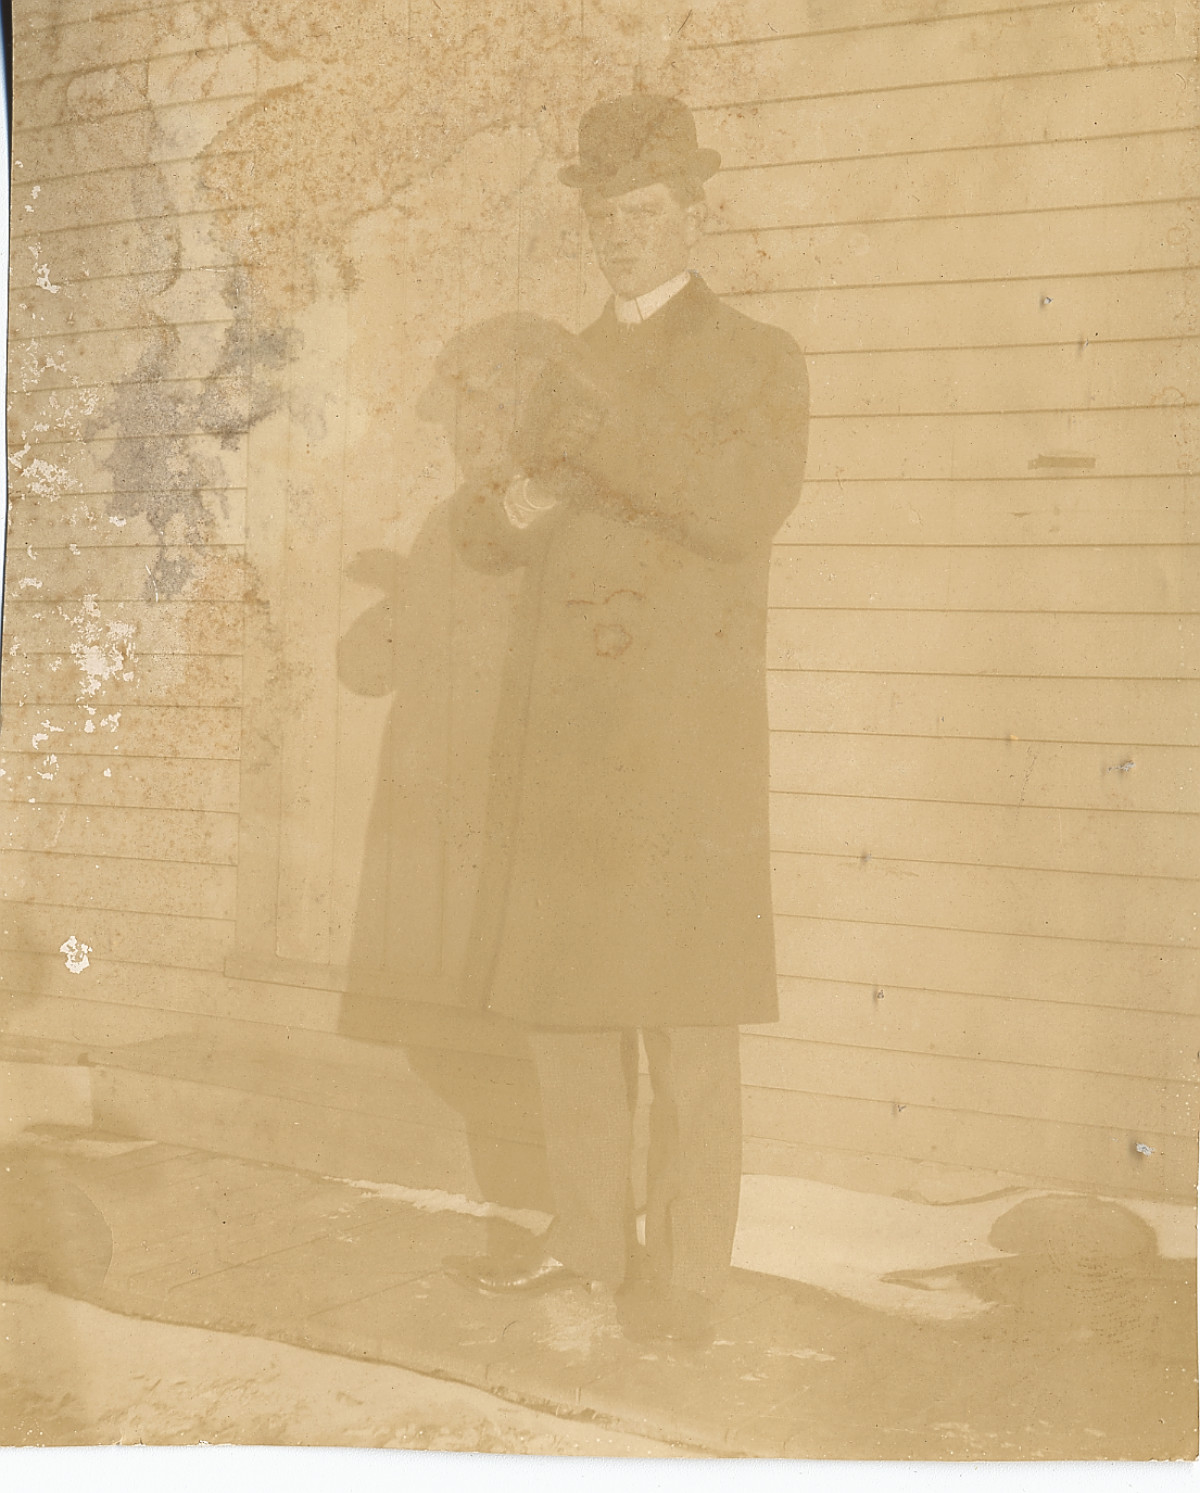 J. O. Schulze in Suit and Derby, c. 1904                                                                                                      [Sequence #]: 1 of 1